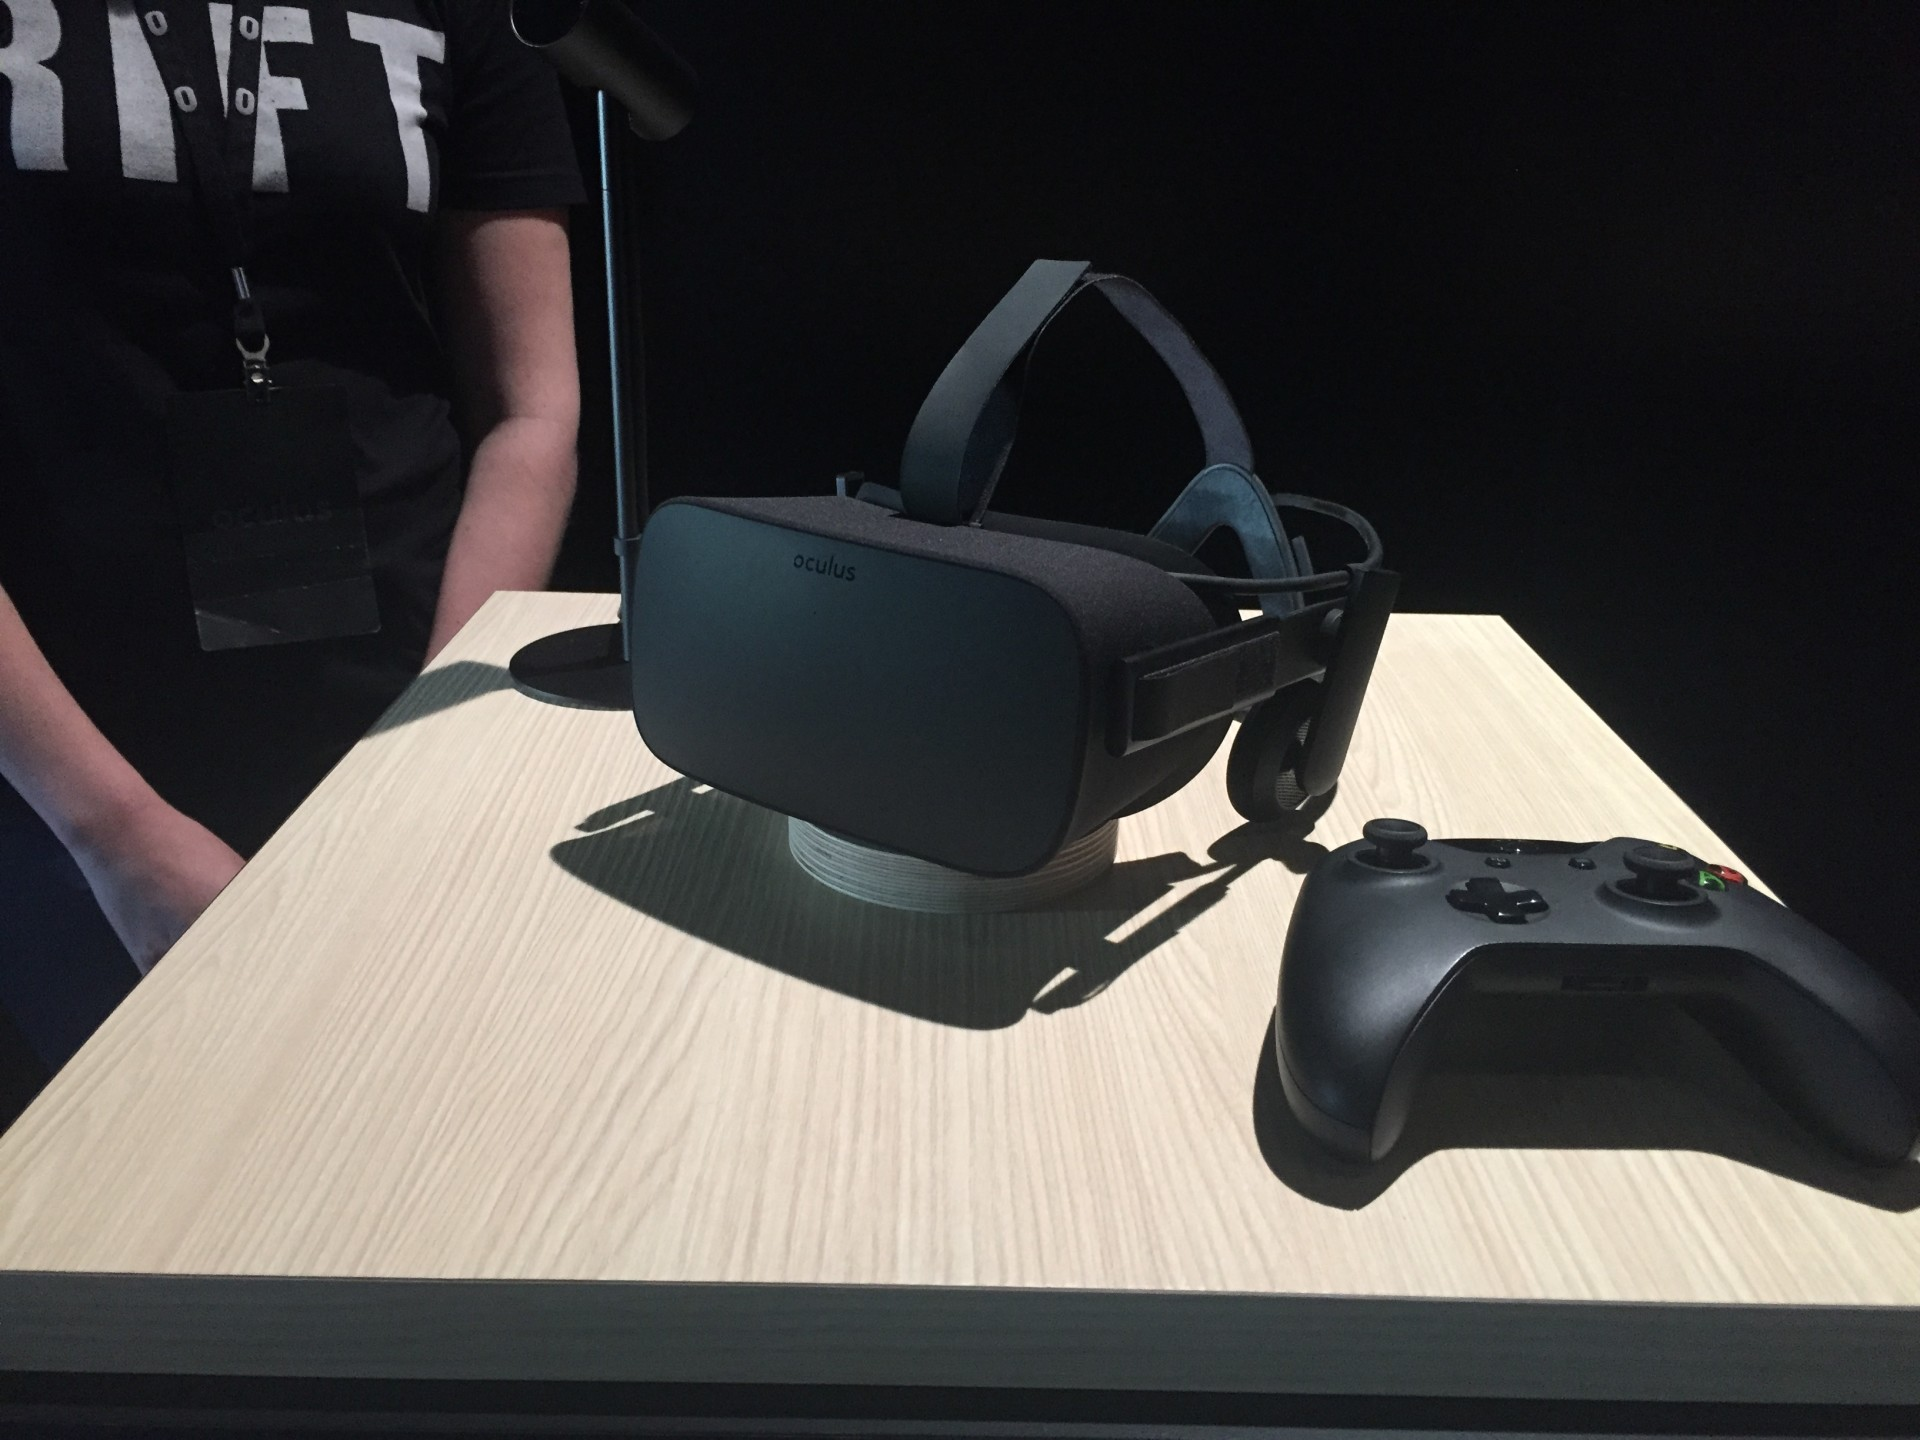 Oculus Rift: Consumer Version has Finally Been Revealed